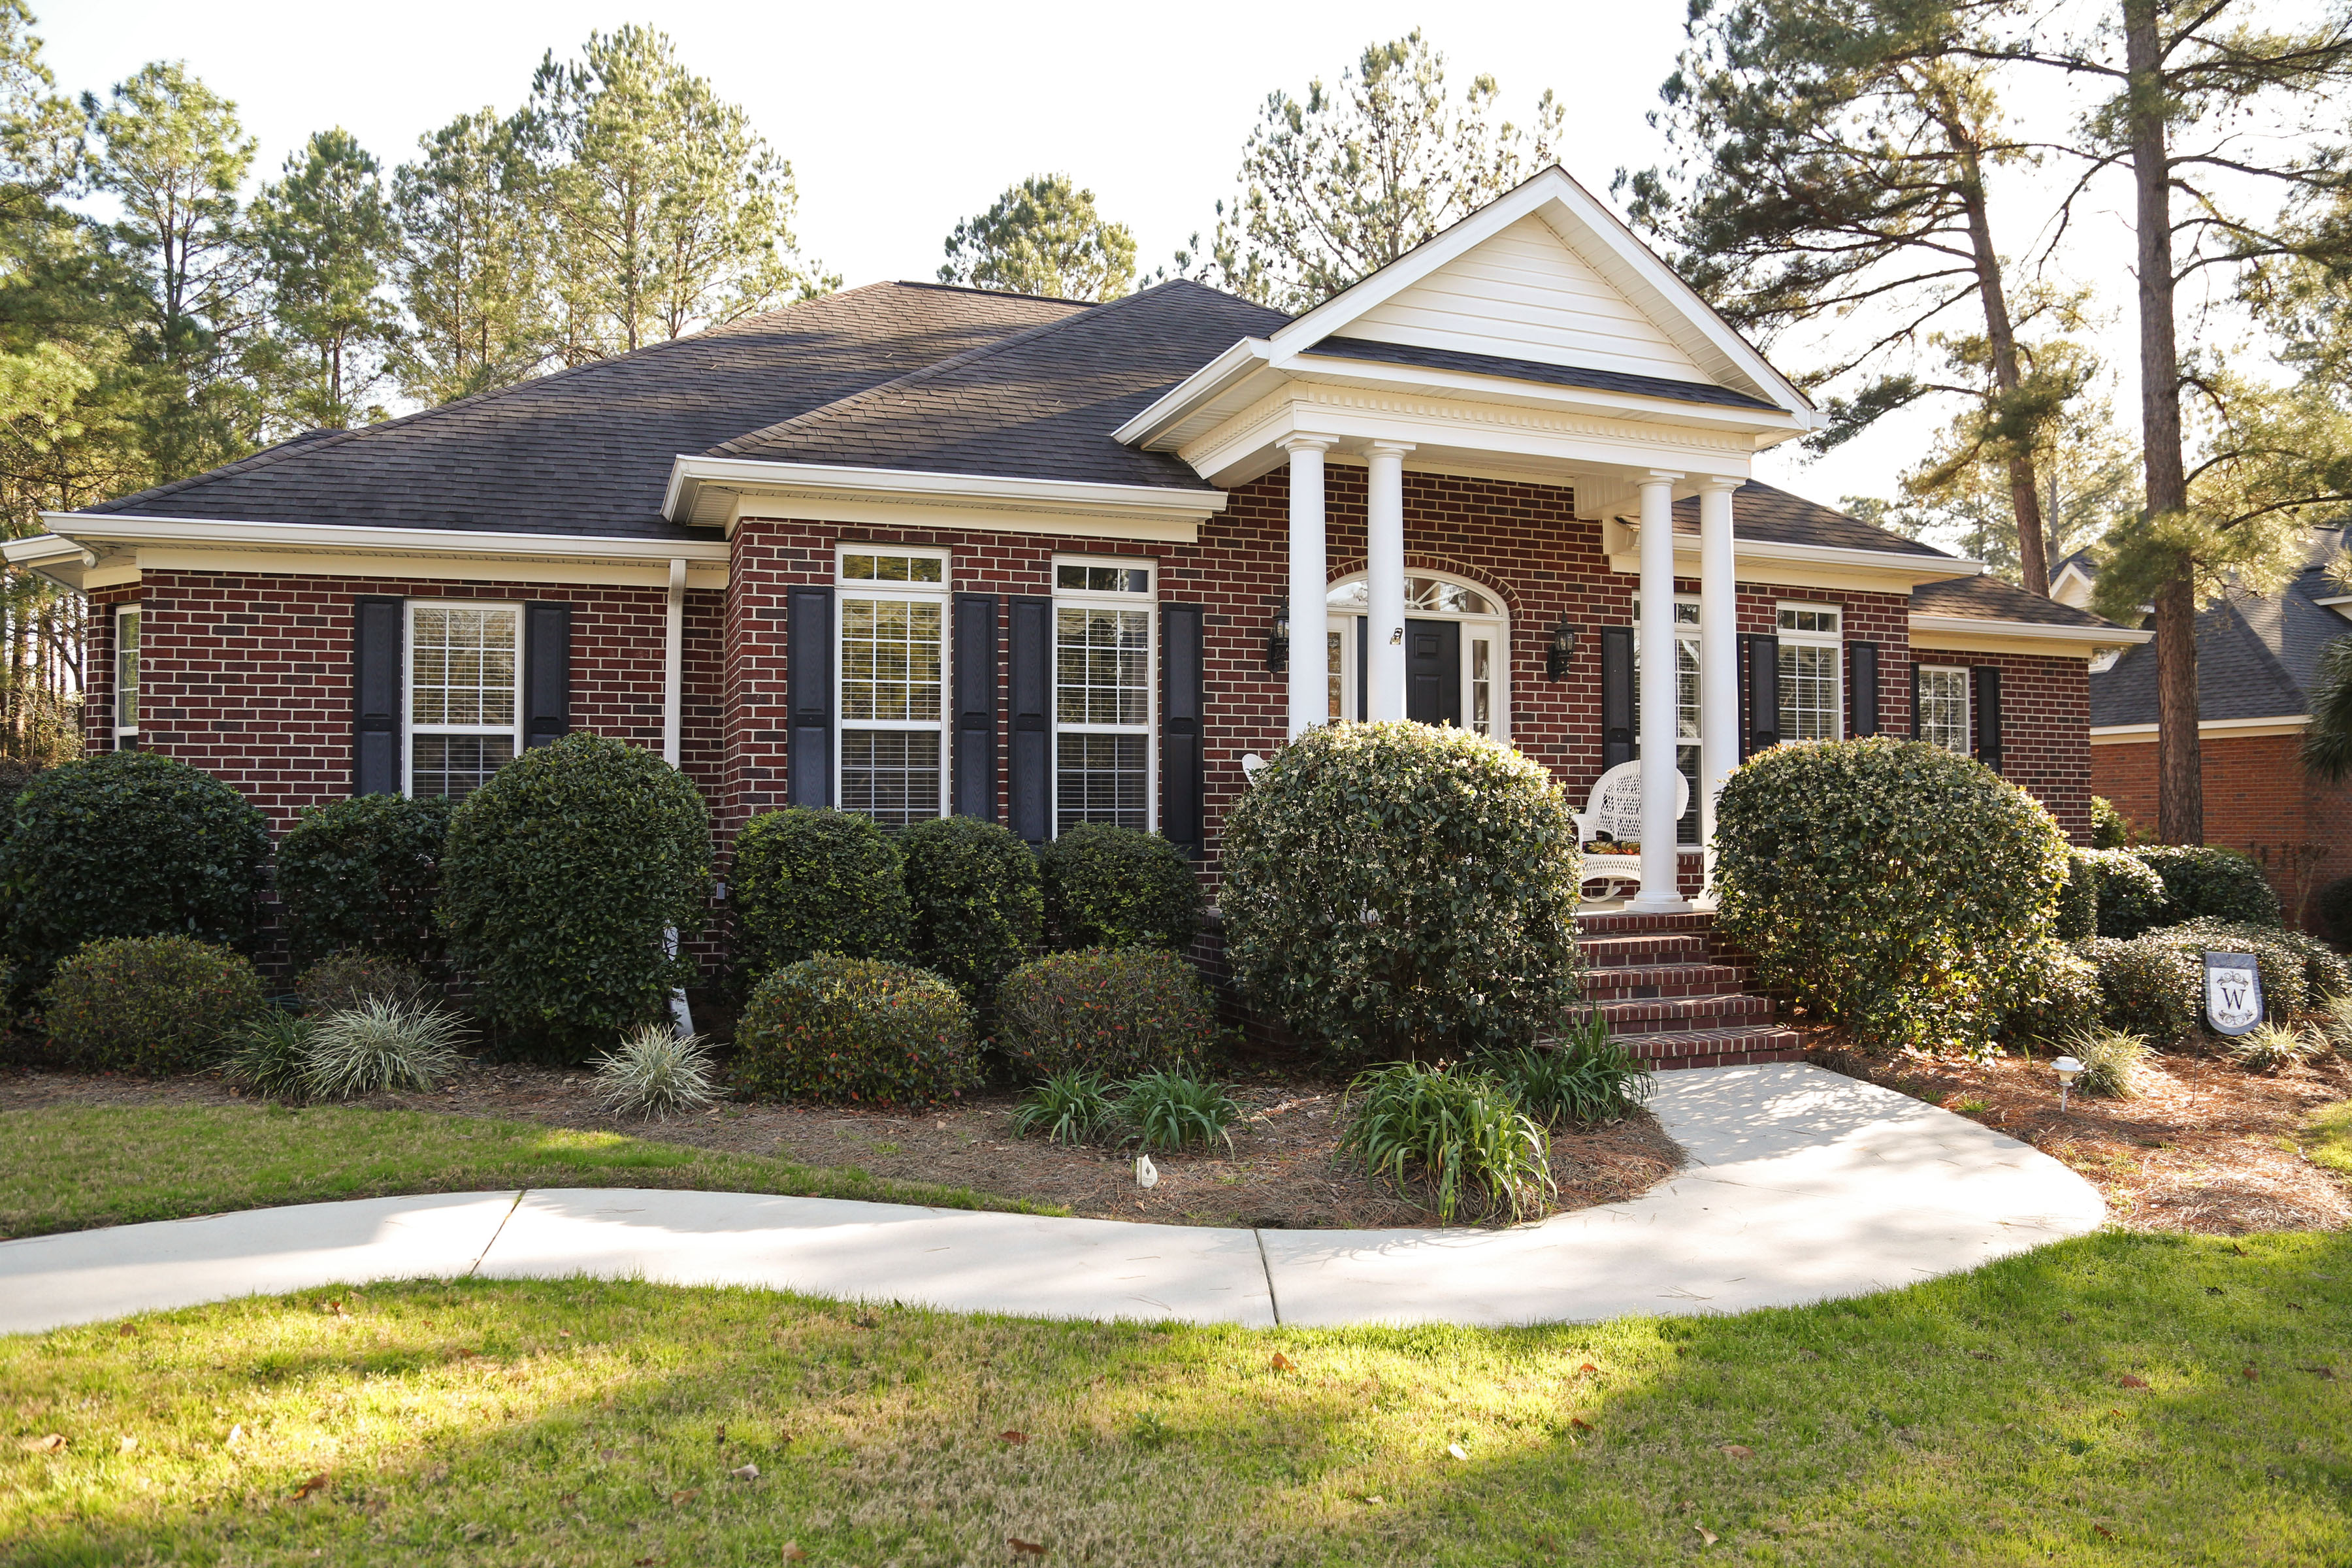 Irongate Home Sold By S/P